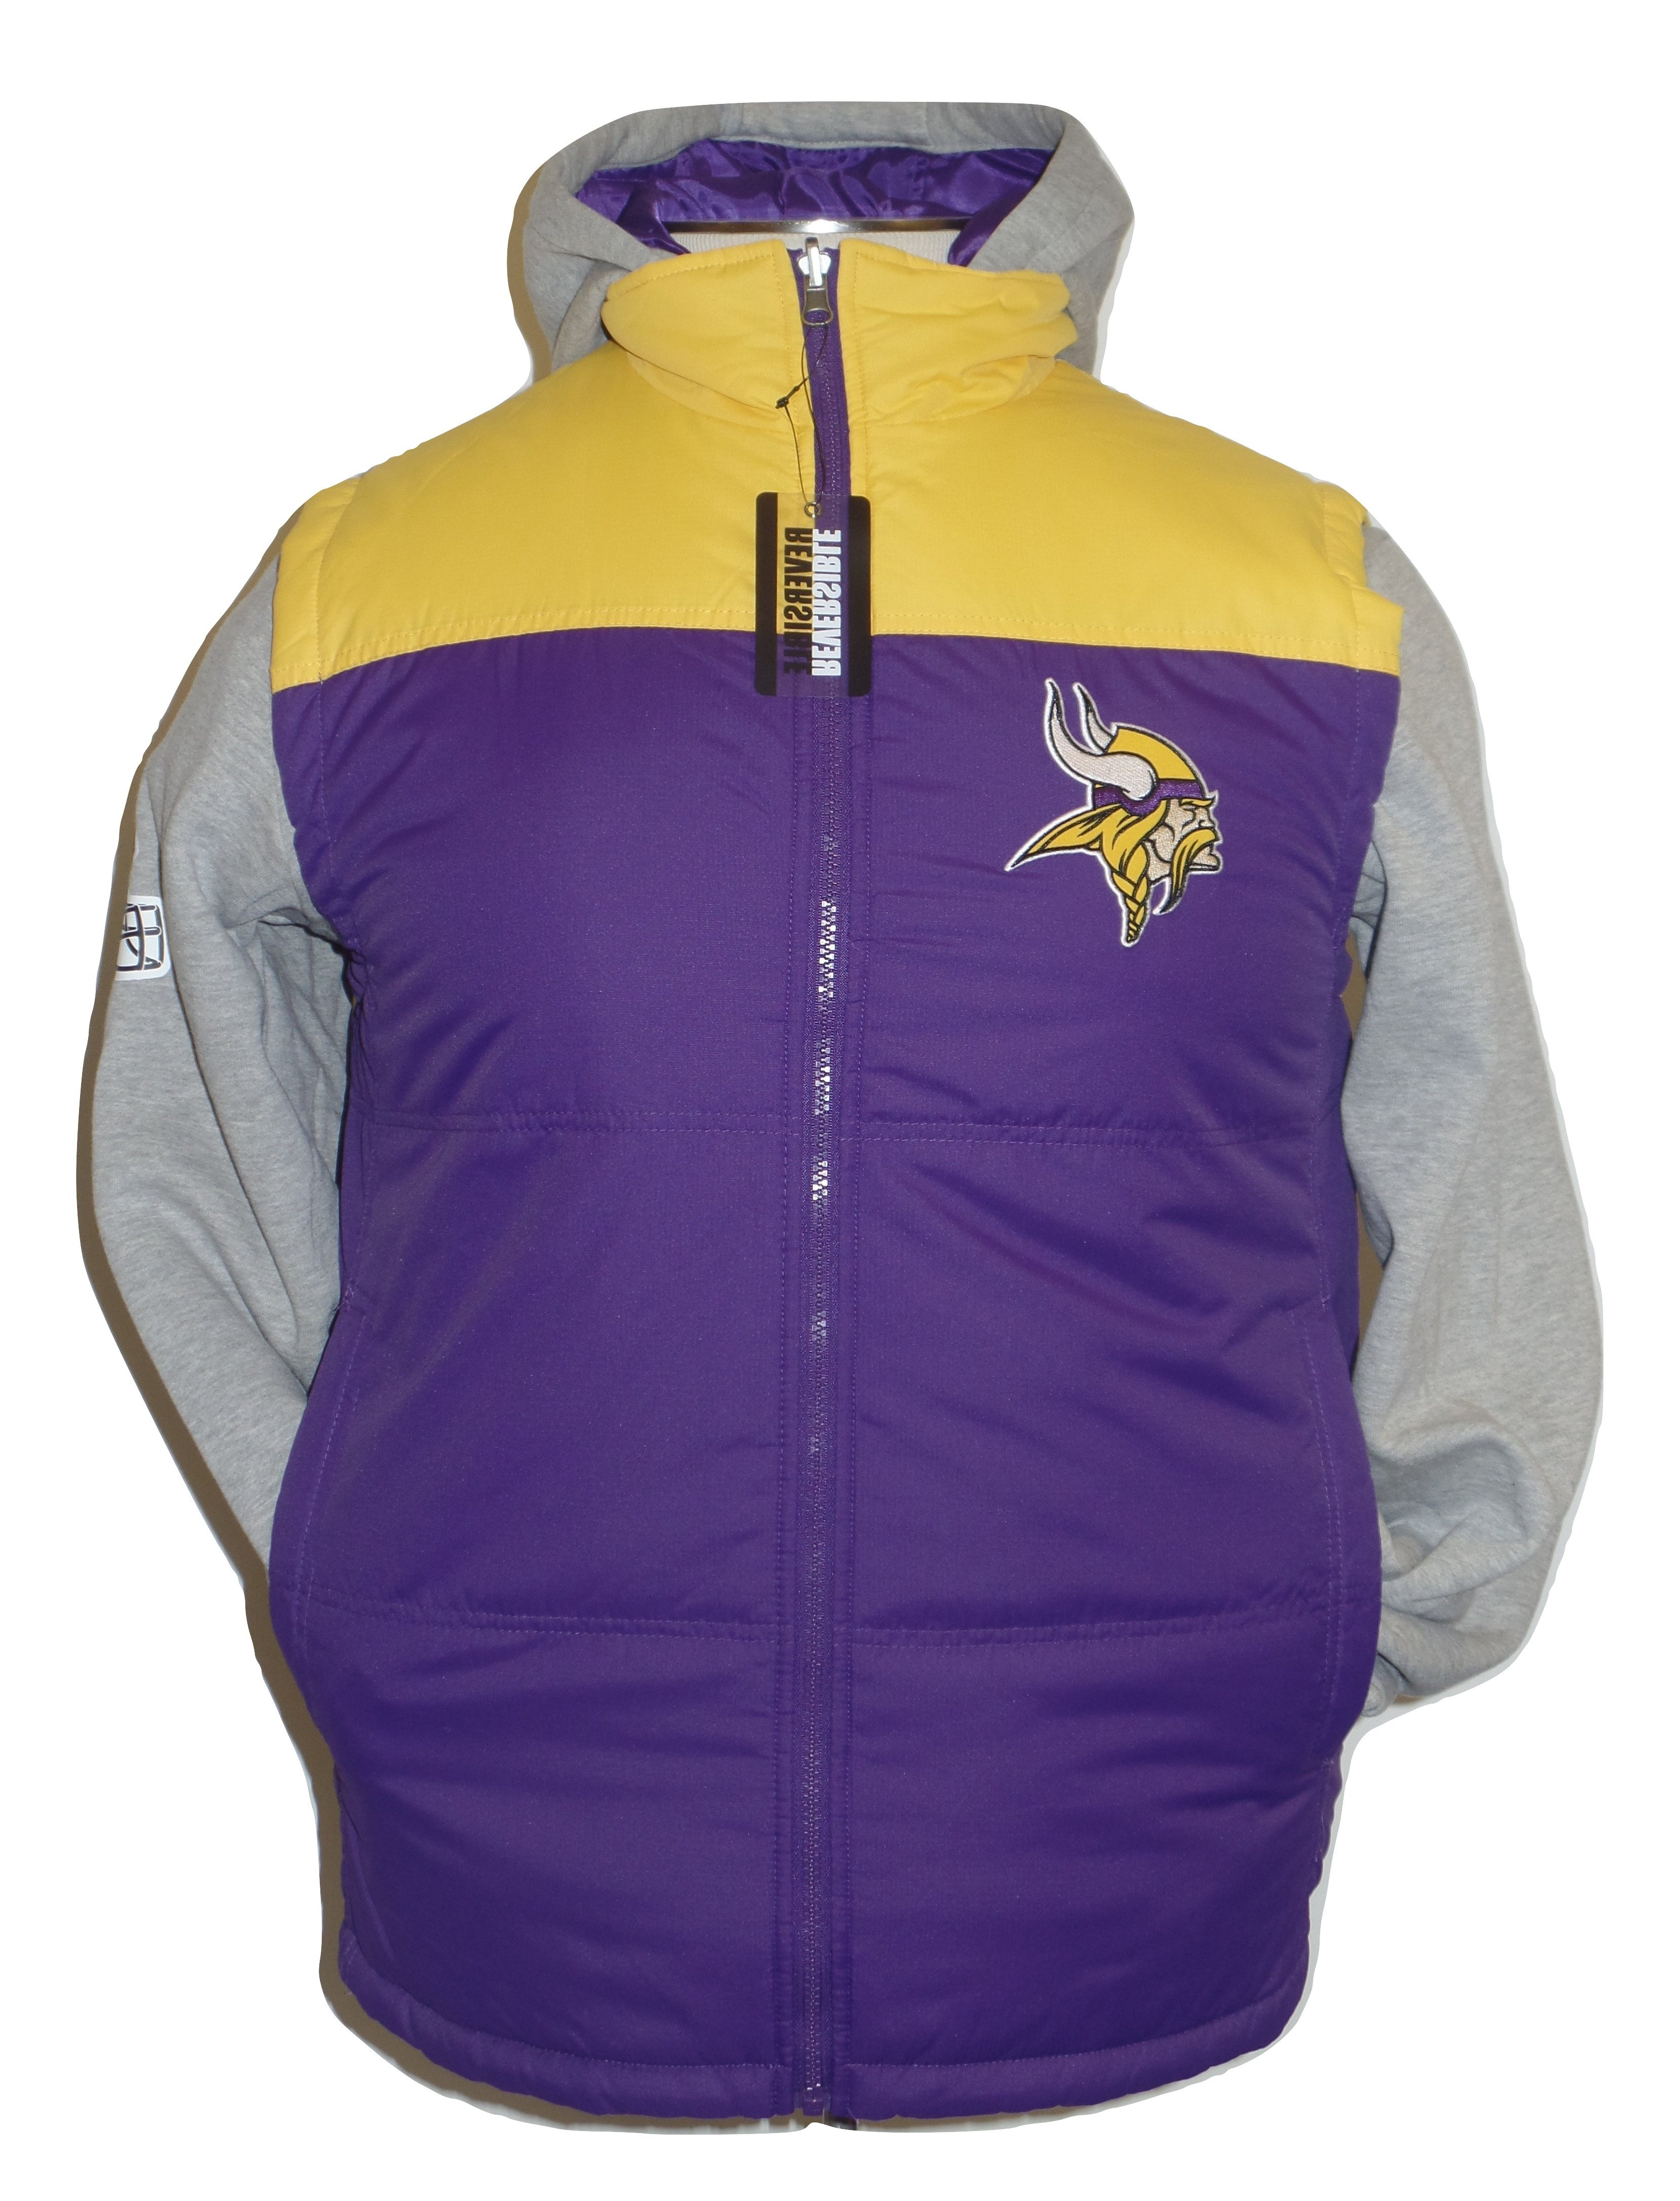 Discount Minnesota Vikings 5 in 1 Reversible Vest and Hoodie Combo Full Zip  free shipping